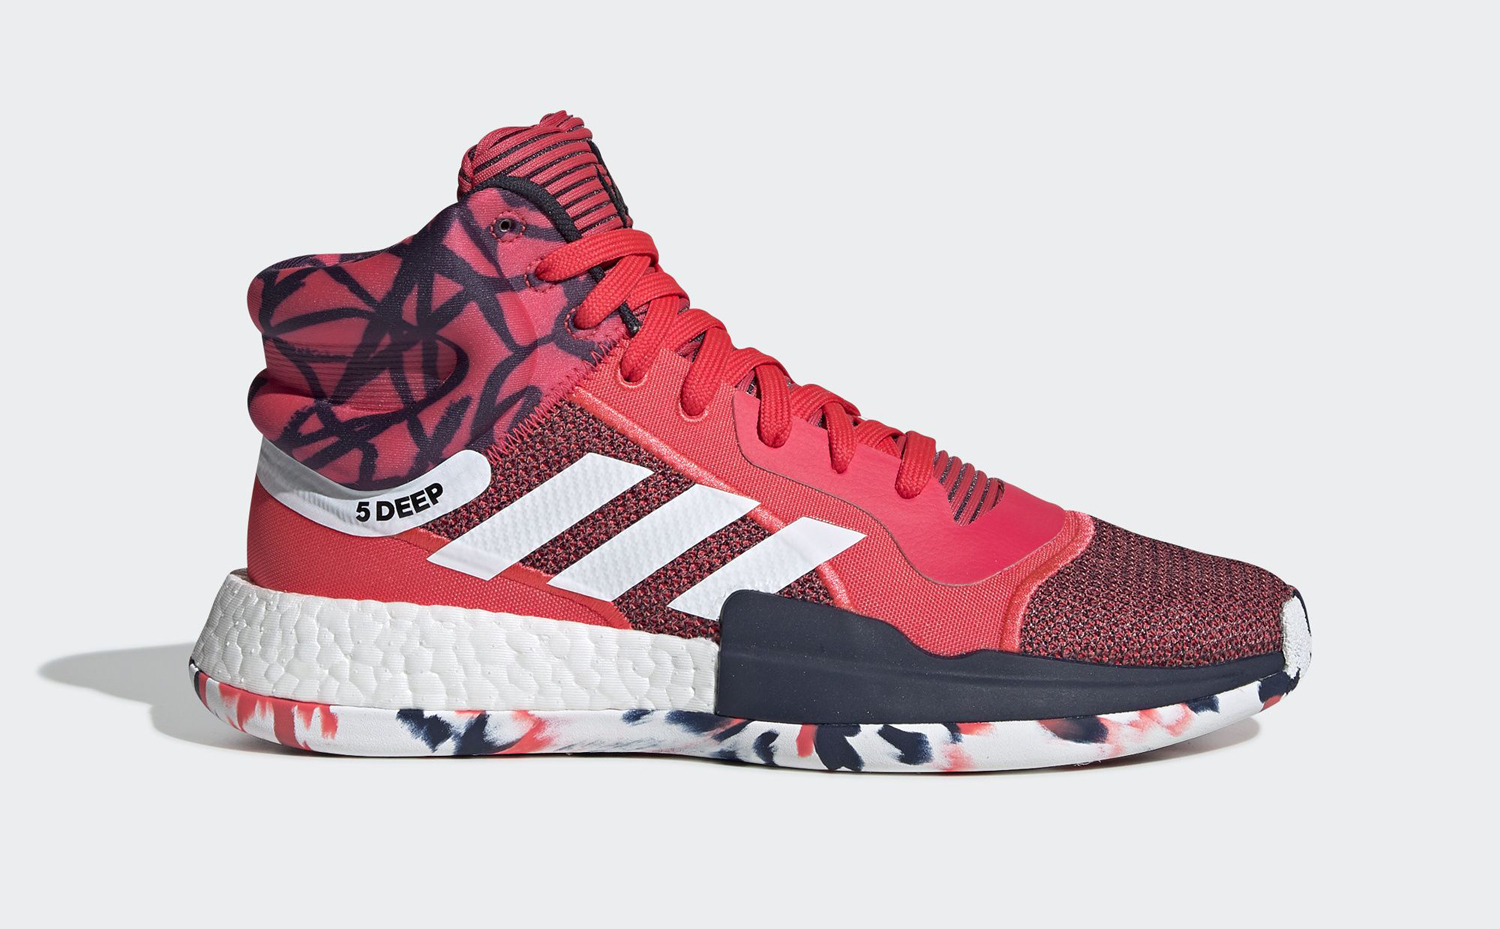 05b224f47d0 adidas-Marquee-Boost-John-Wall-PE-Five-Deep-2 - WearTesters